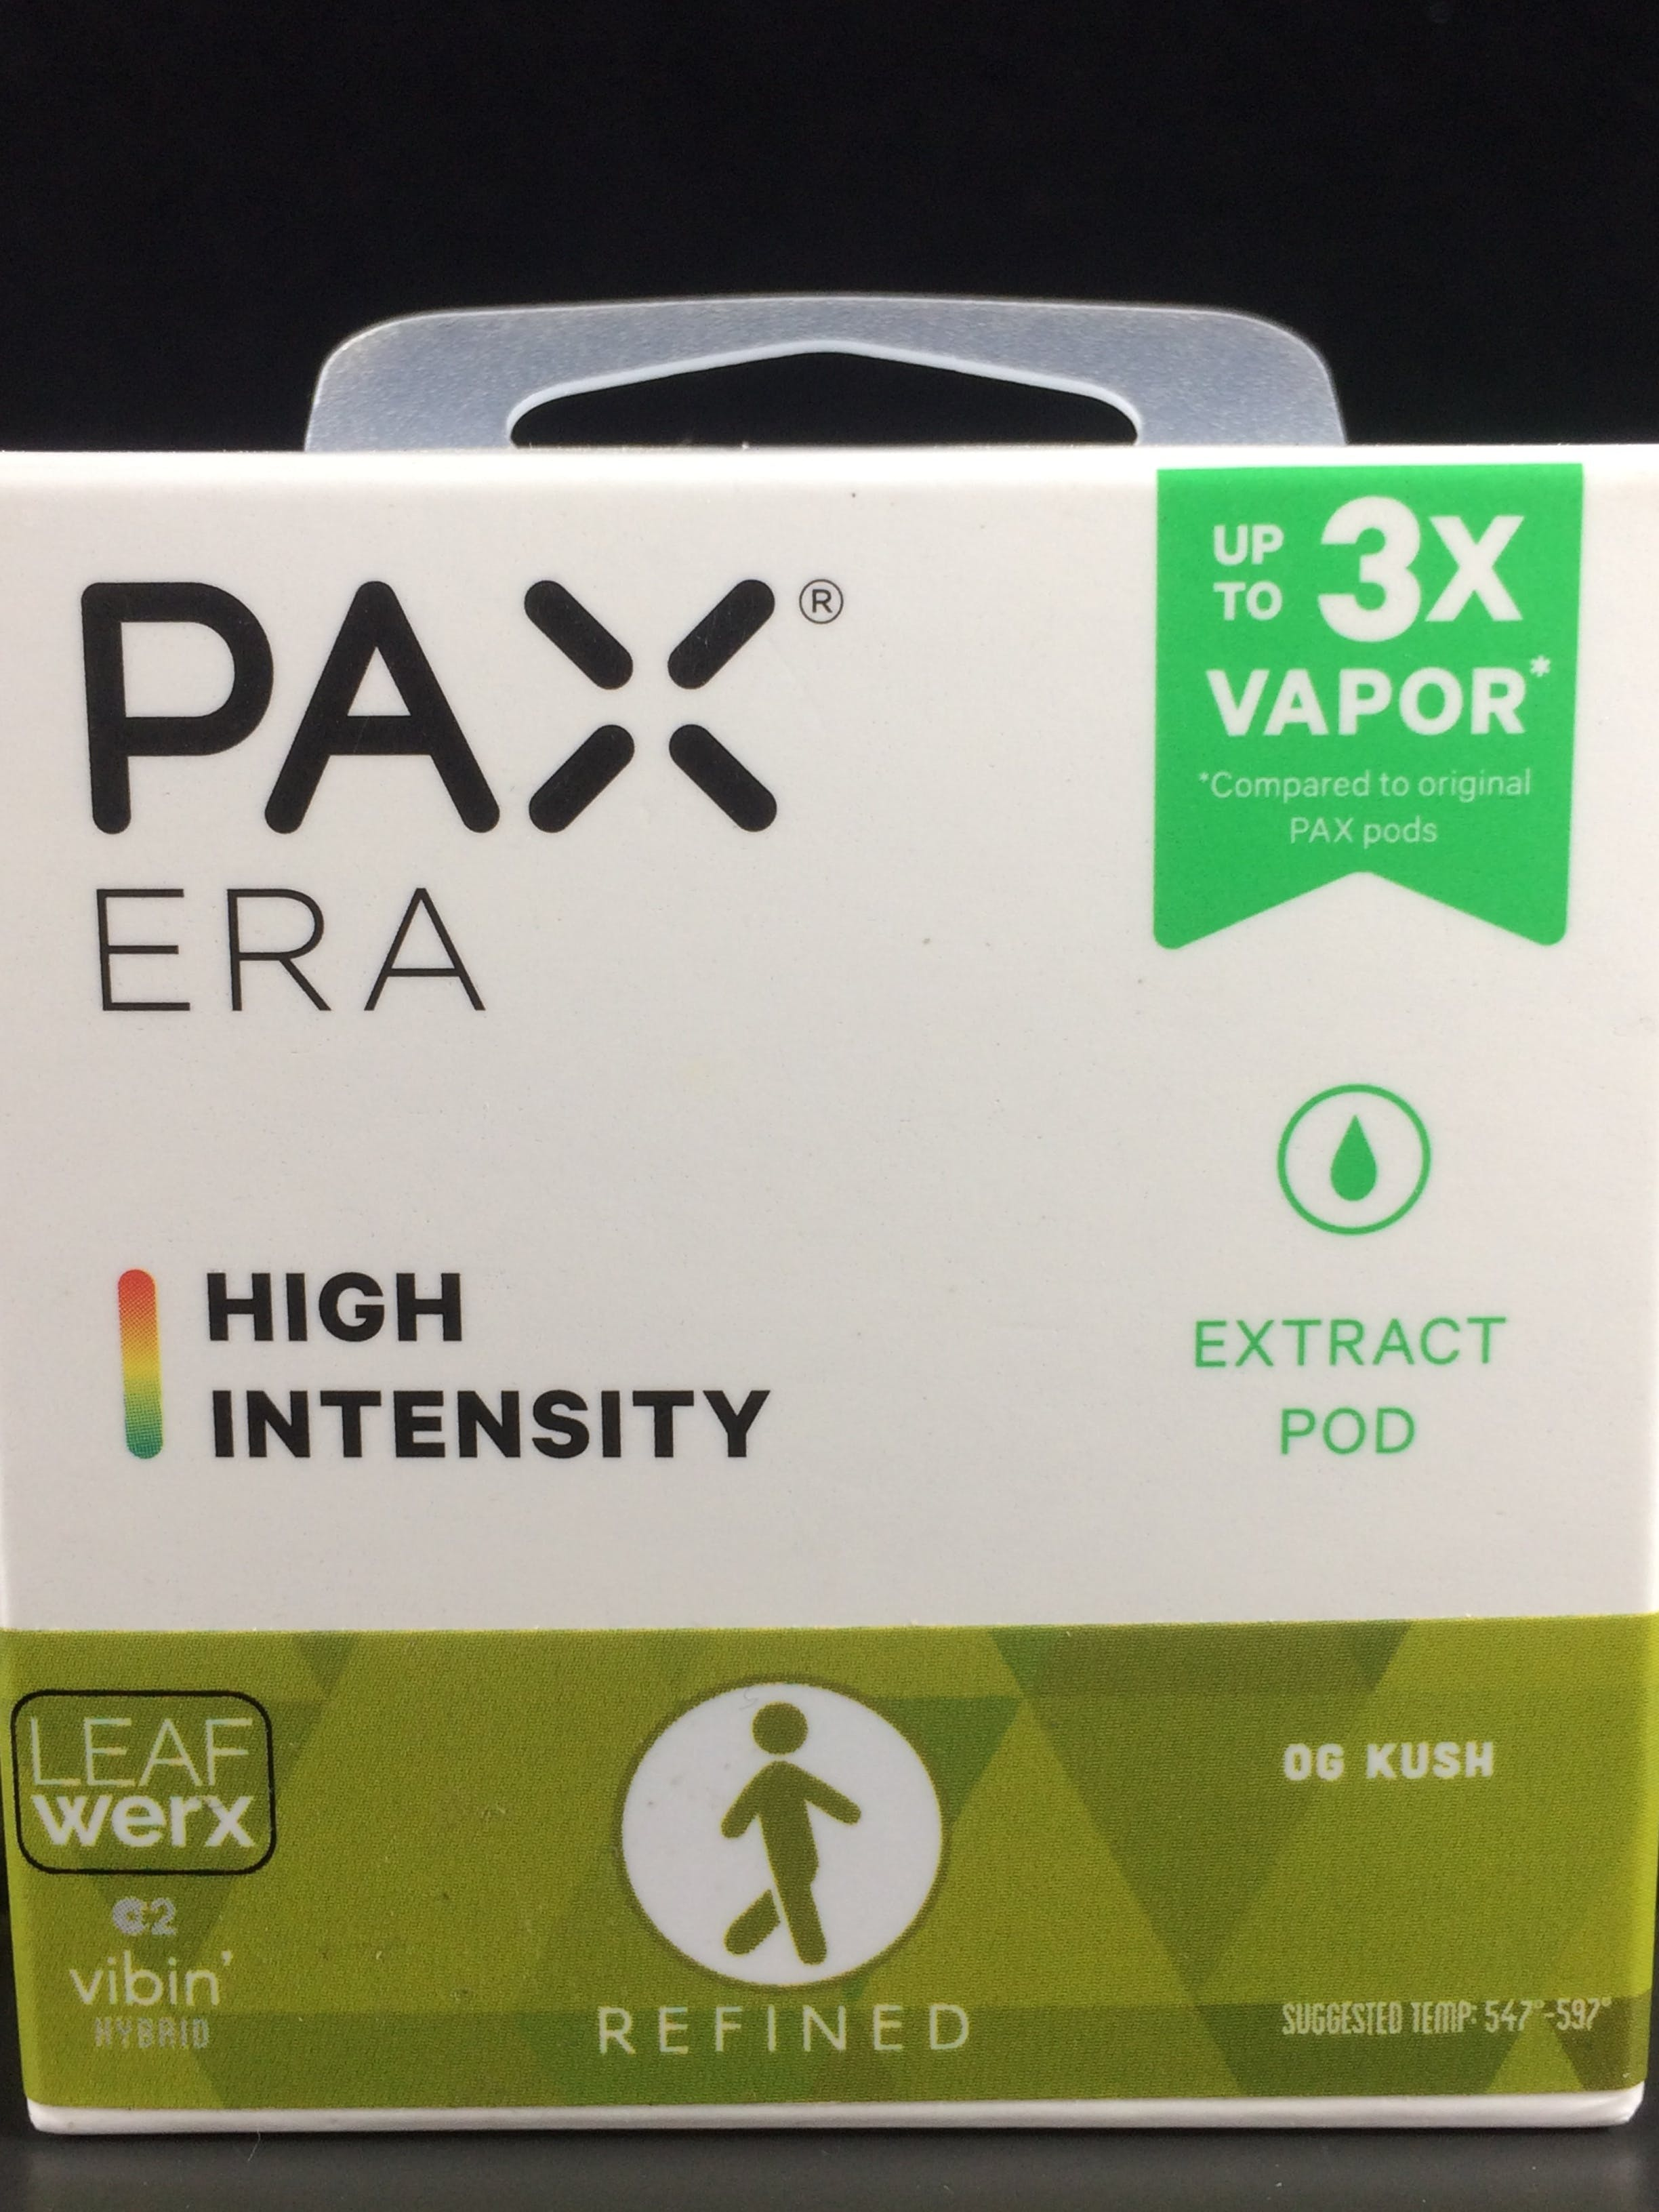 concentrate-og-kush-pax-cartridges-by-leafwerx